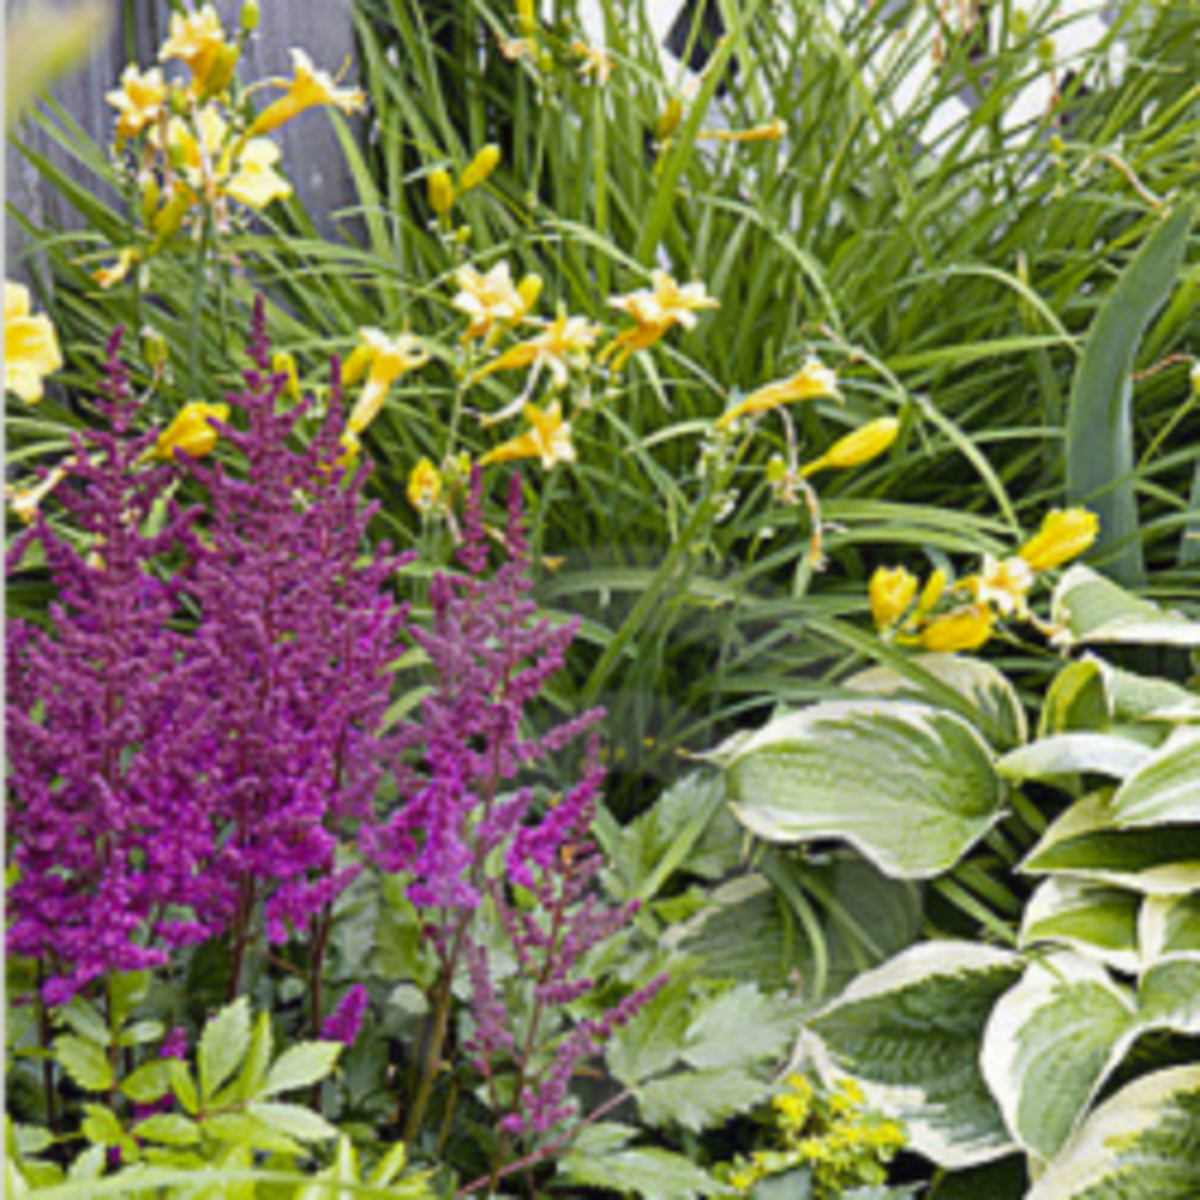 Astibe, daylilies, and hostas in a part shade perennial border.